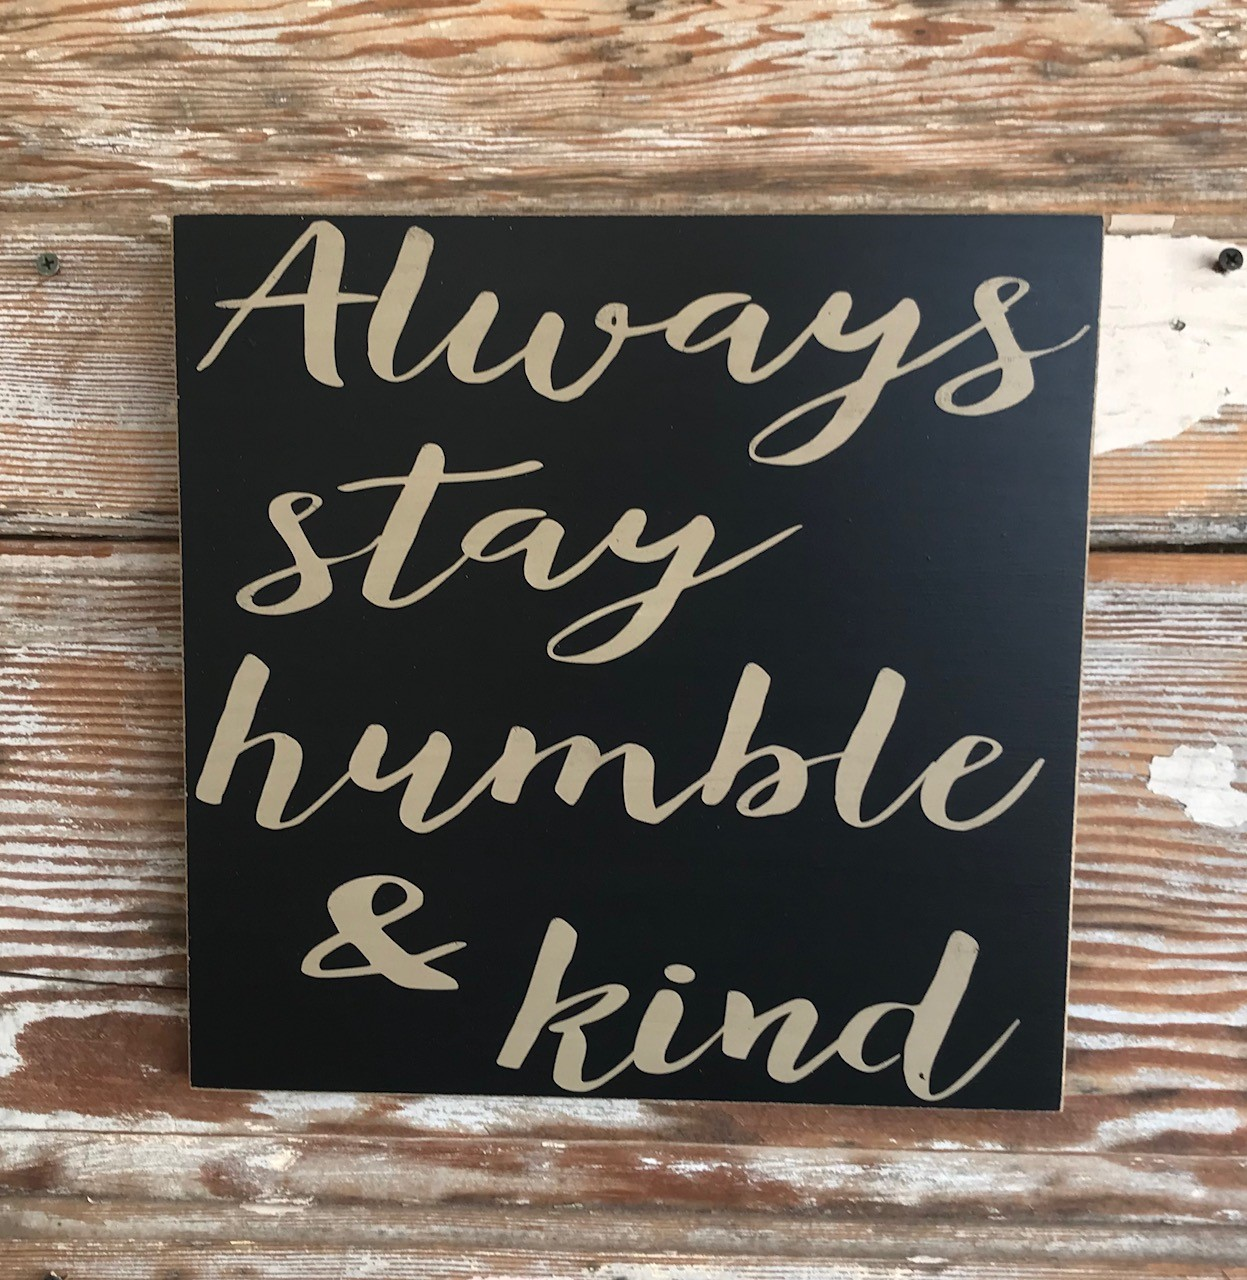 Always Stay Humble & Kind.  Wood Sign